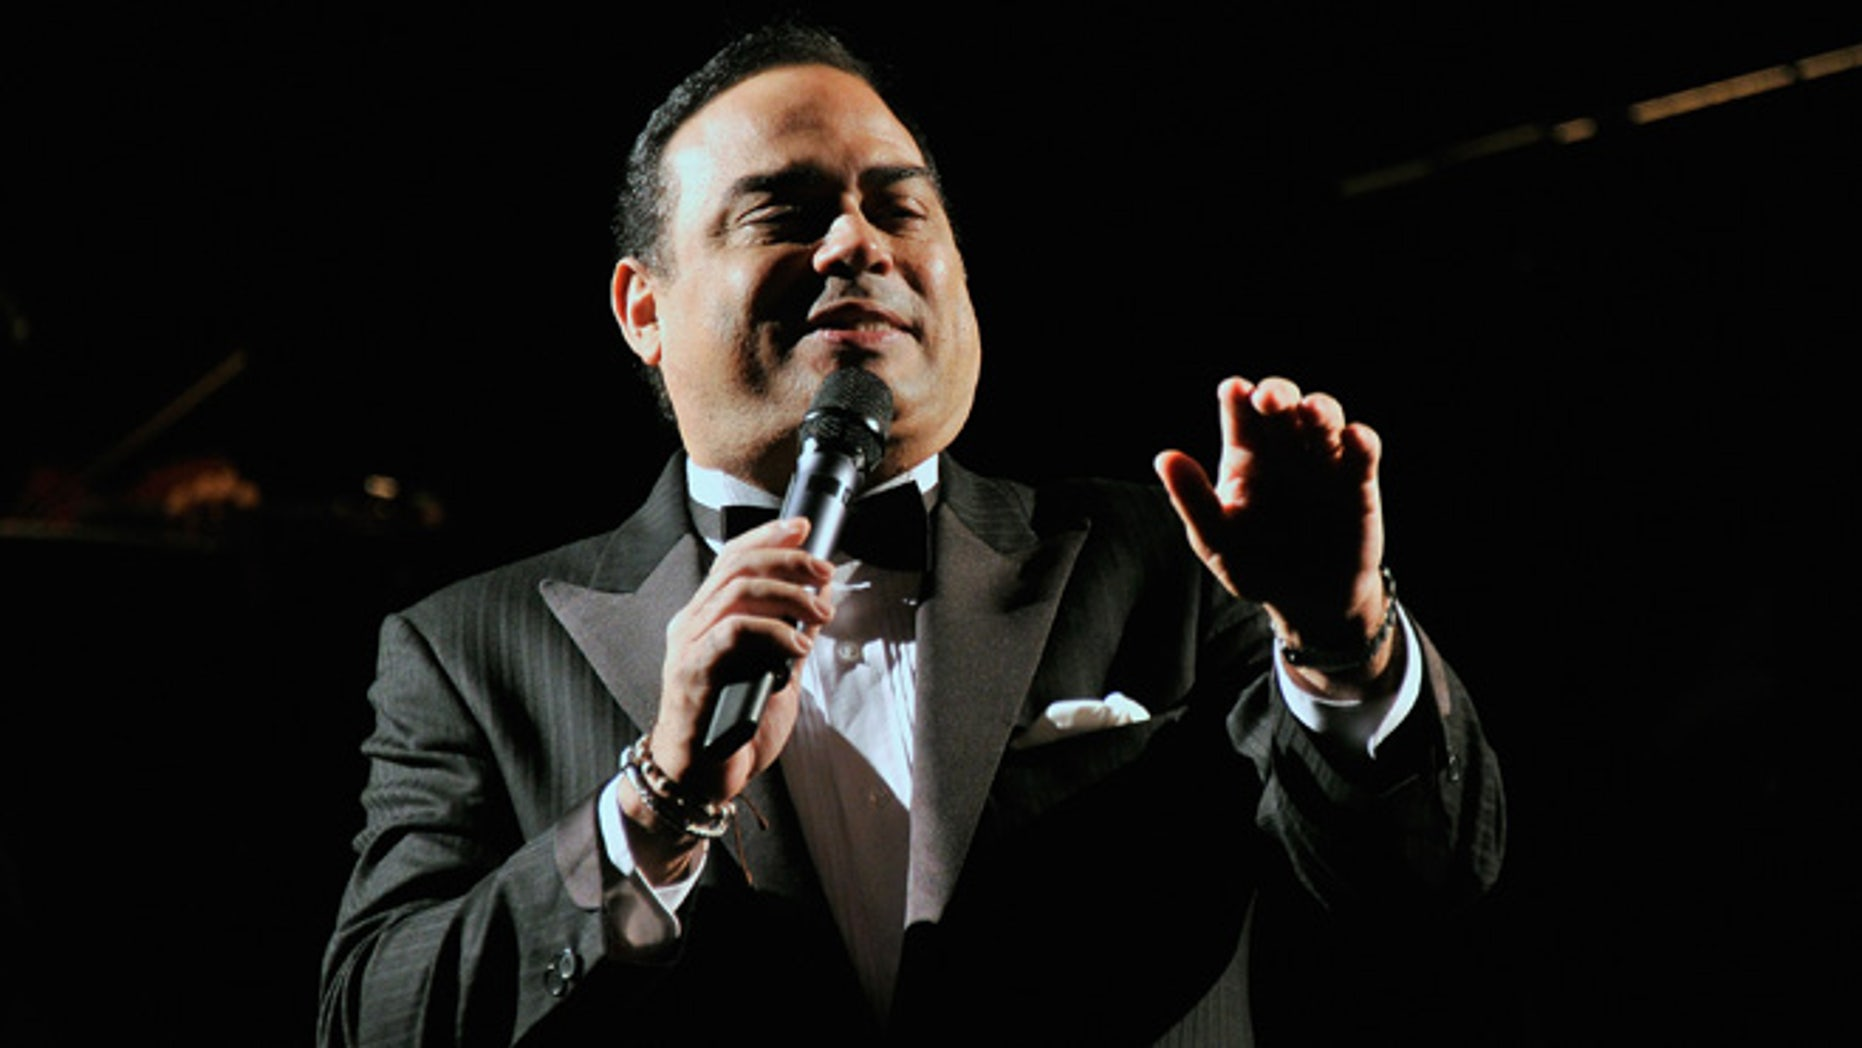 """NEW YORK, NY - JULY 11:  Singer Gilberto Santa Rosa performs at the """"Forever Tango"""" Press Preview at Walter Kerr Theatre on July 11, 2013 in New York City.  (Photo by Stephen Lovekin/Getty Images)"""